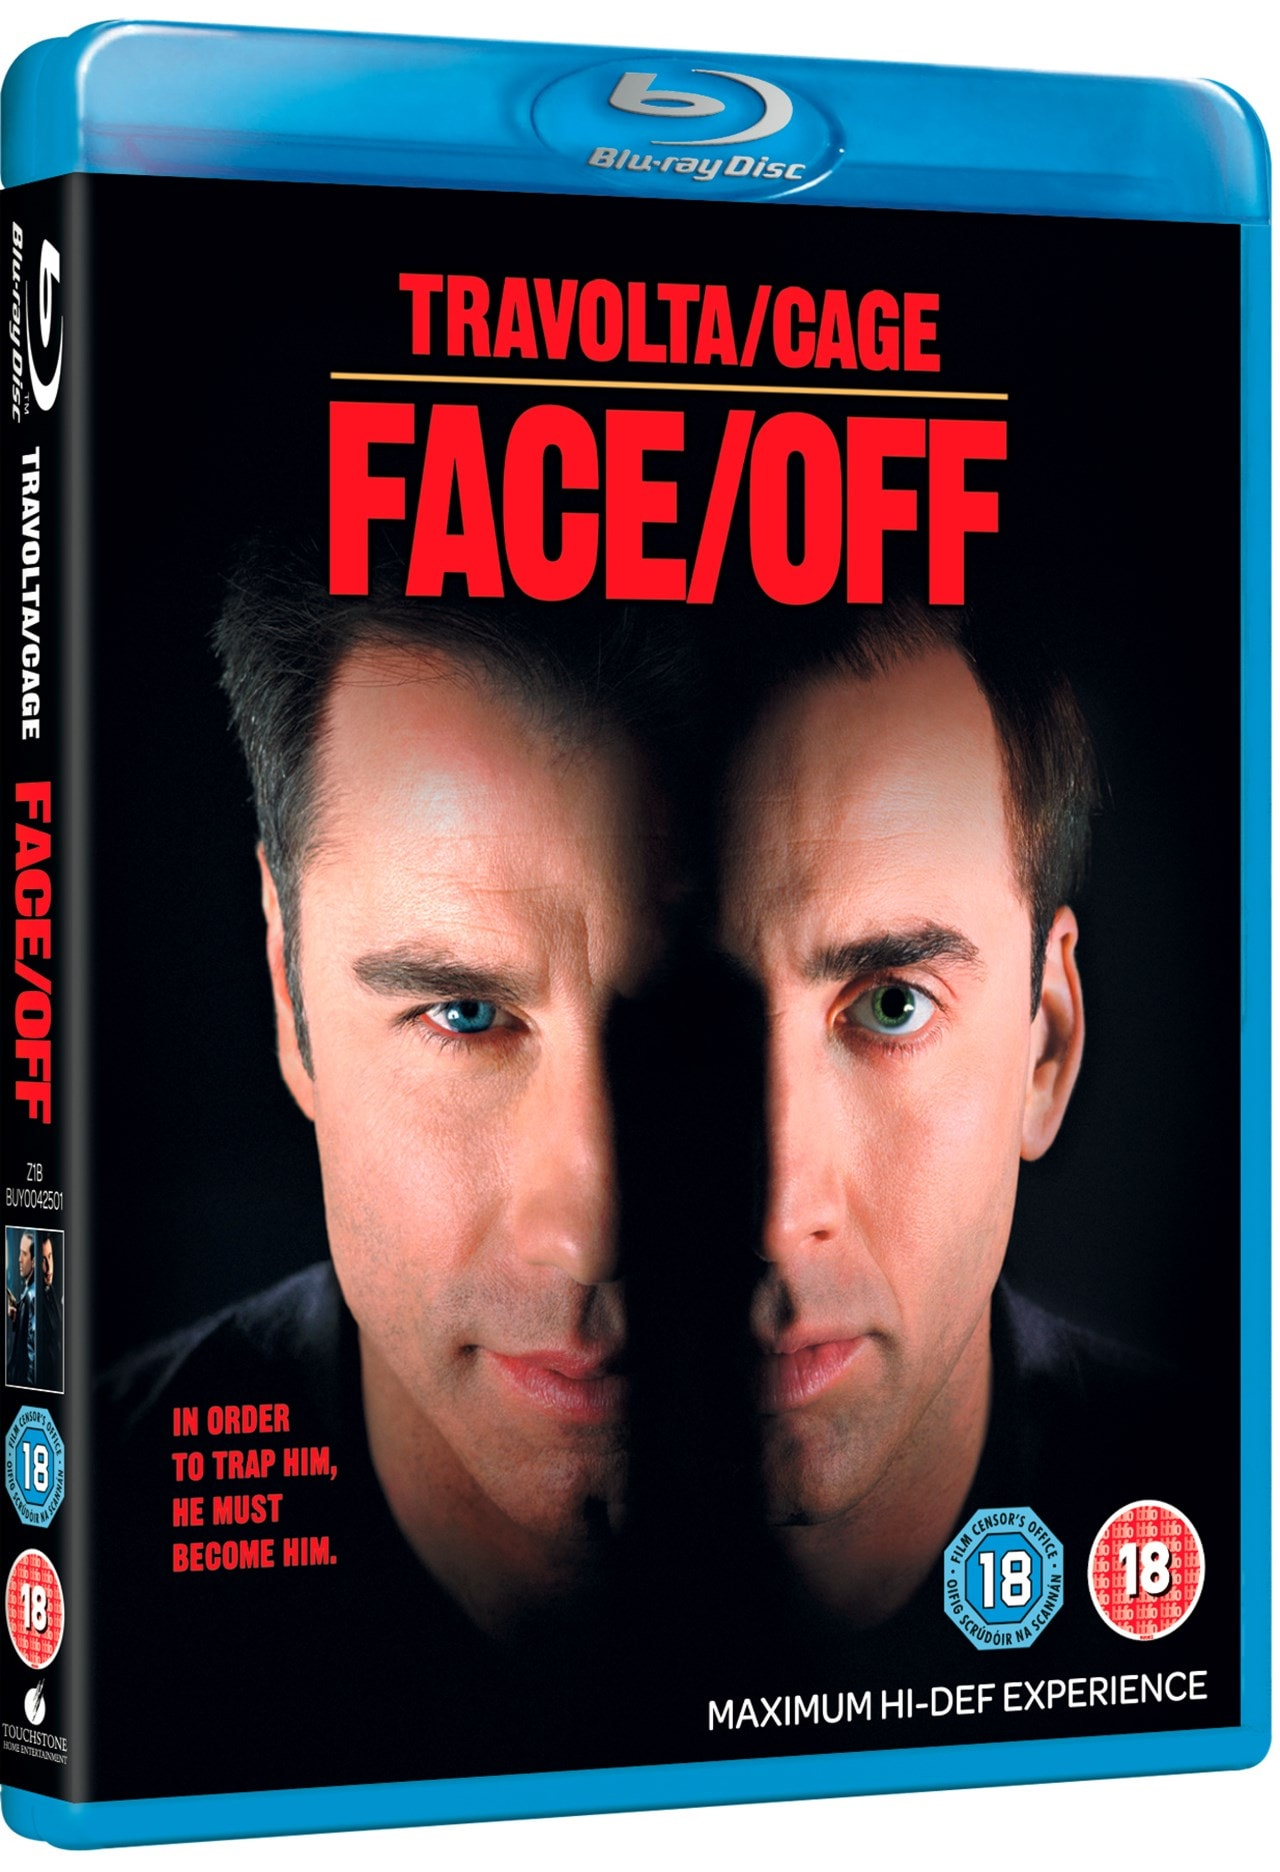 Face/Off - 2